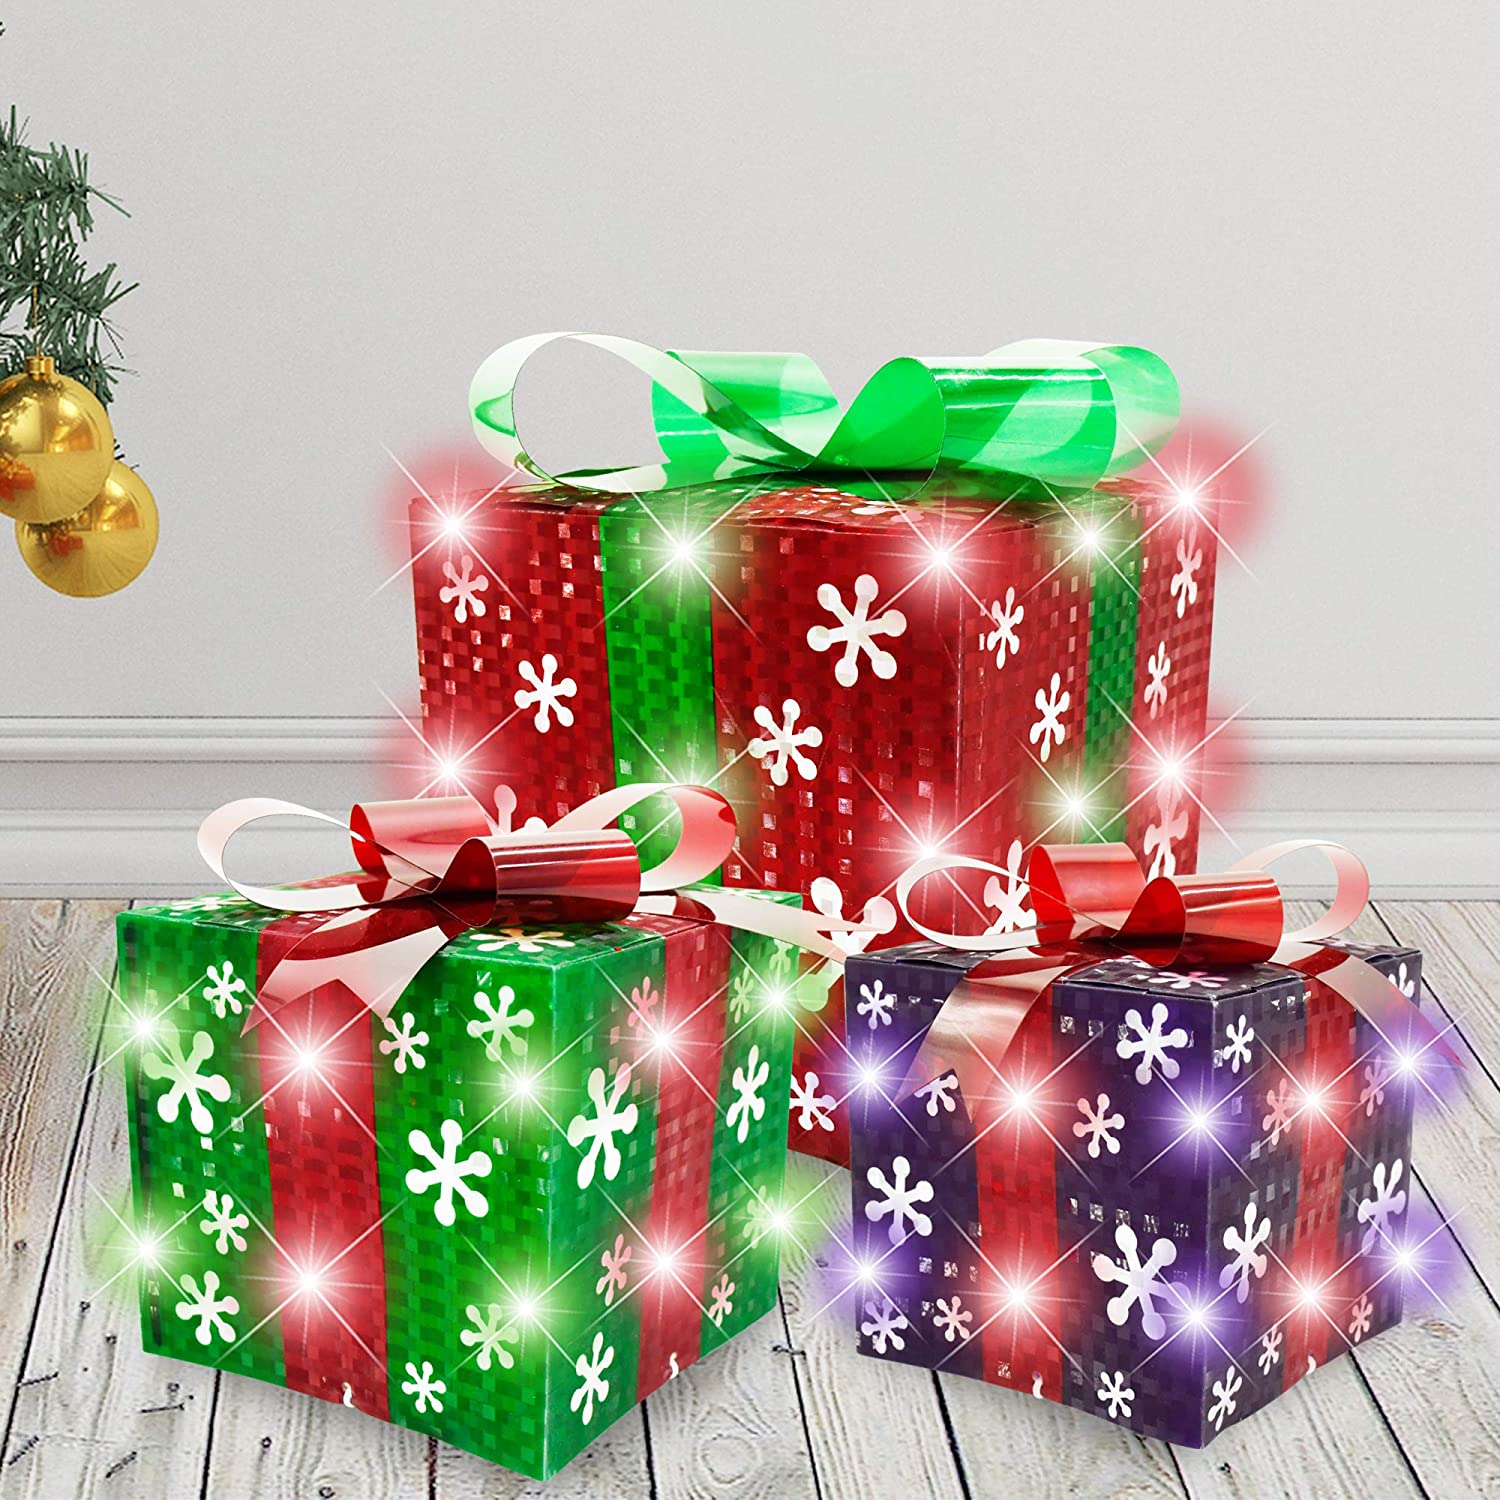 Christmas Light Boxes Décor Set of 3 Christmas Lighted Gift Boxes Decorations Outdoor Indoor and Christmas Tree Decorations